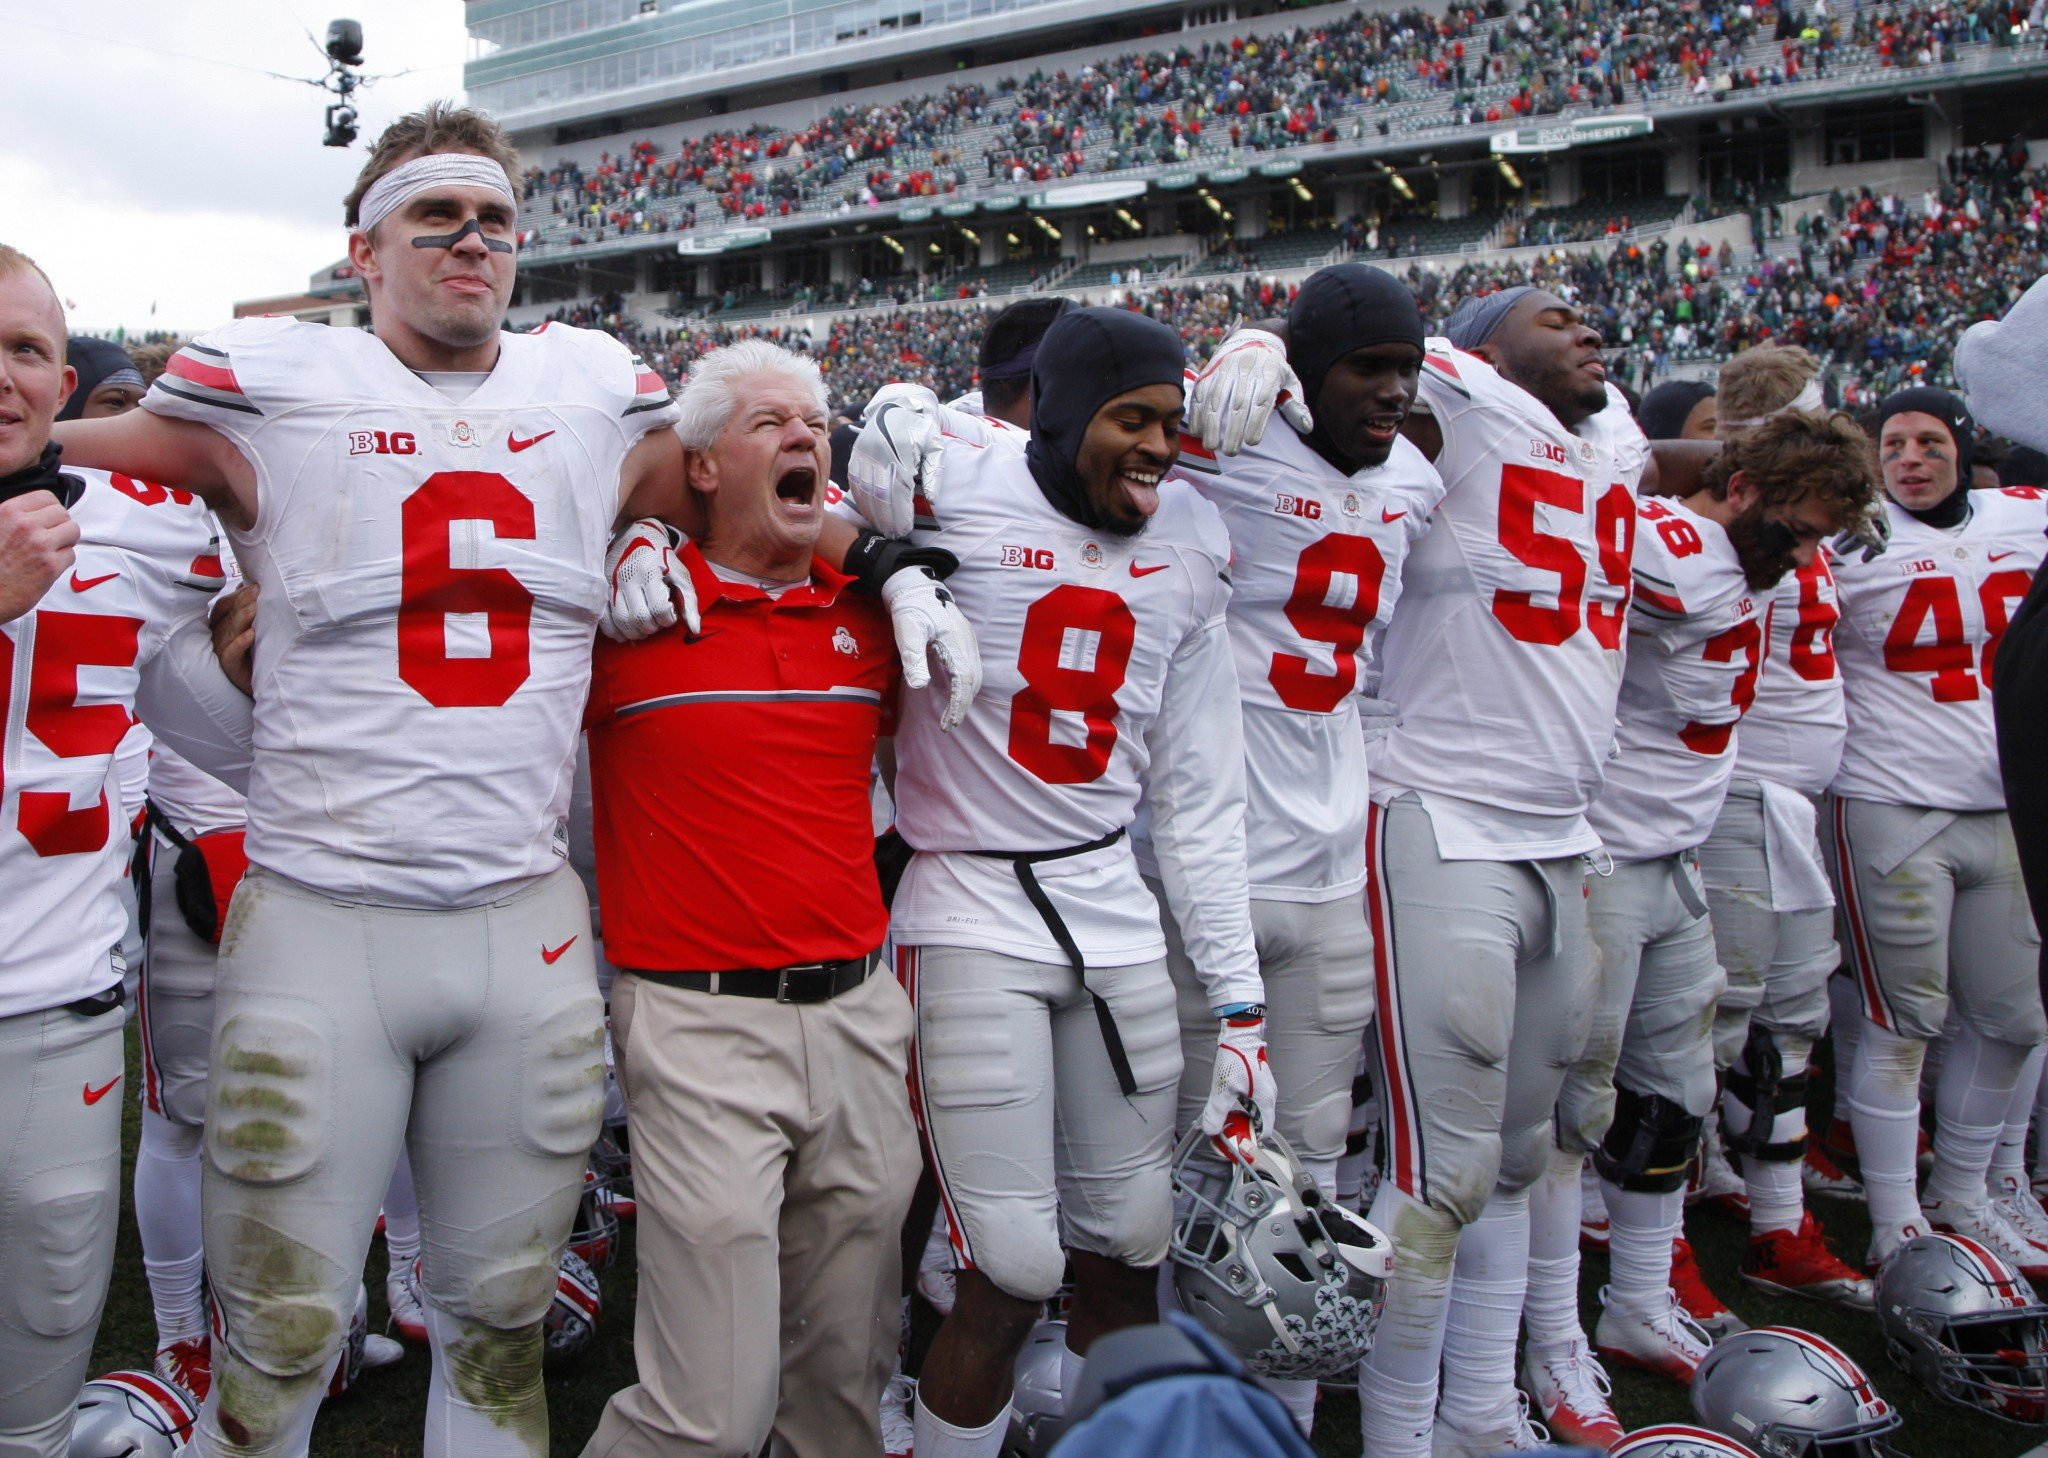 Ohio State is ranked No. 2 heading into Saturday's game against No. 3 Michigan. (AP Photo/Al Goldis)